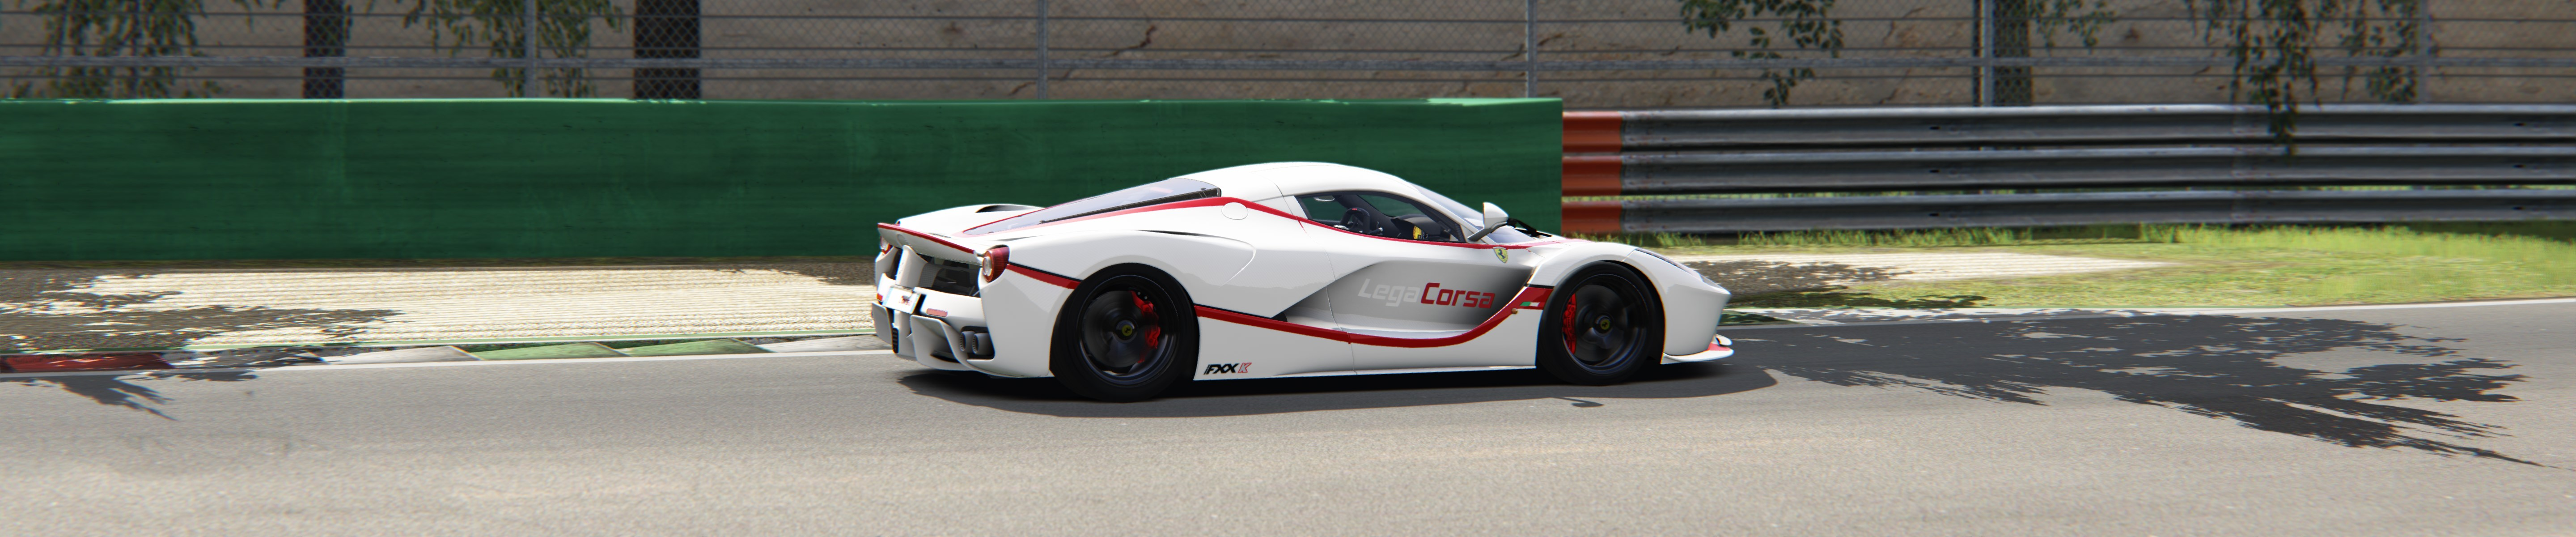 Screenshot_ferrari_laferrari_monza_16-3-117-21-30-24.jpg